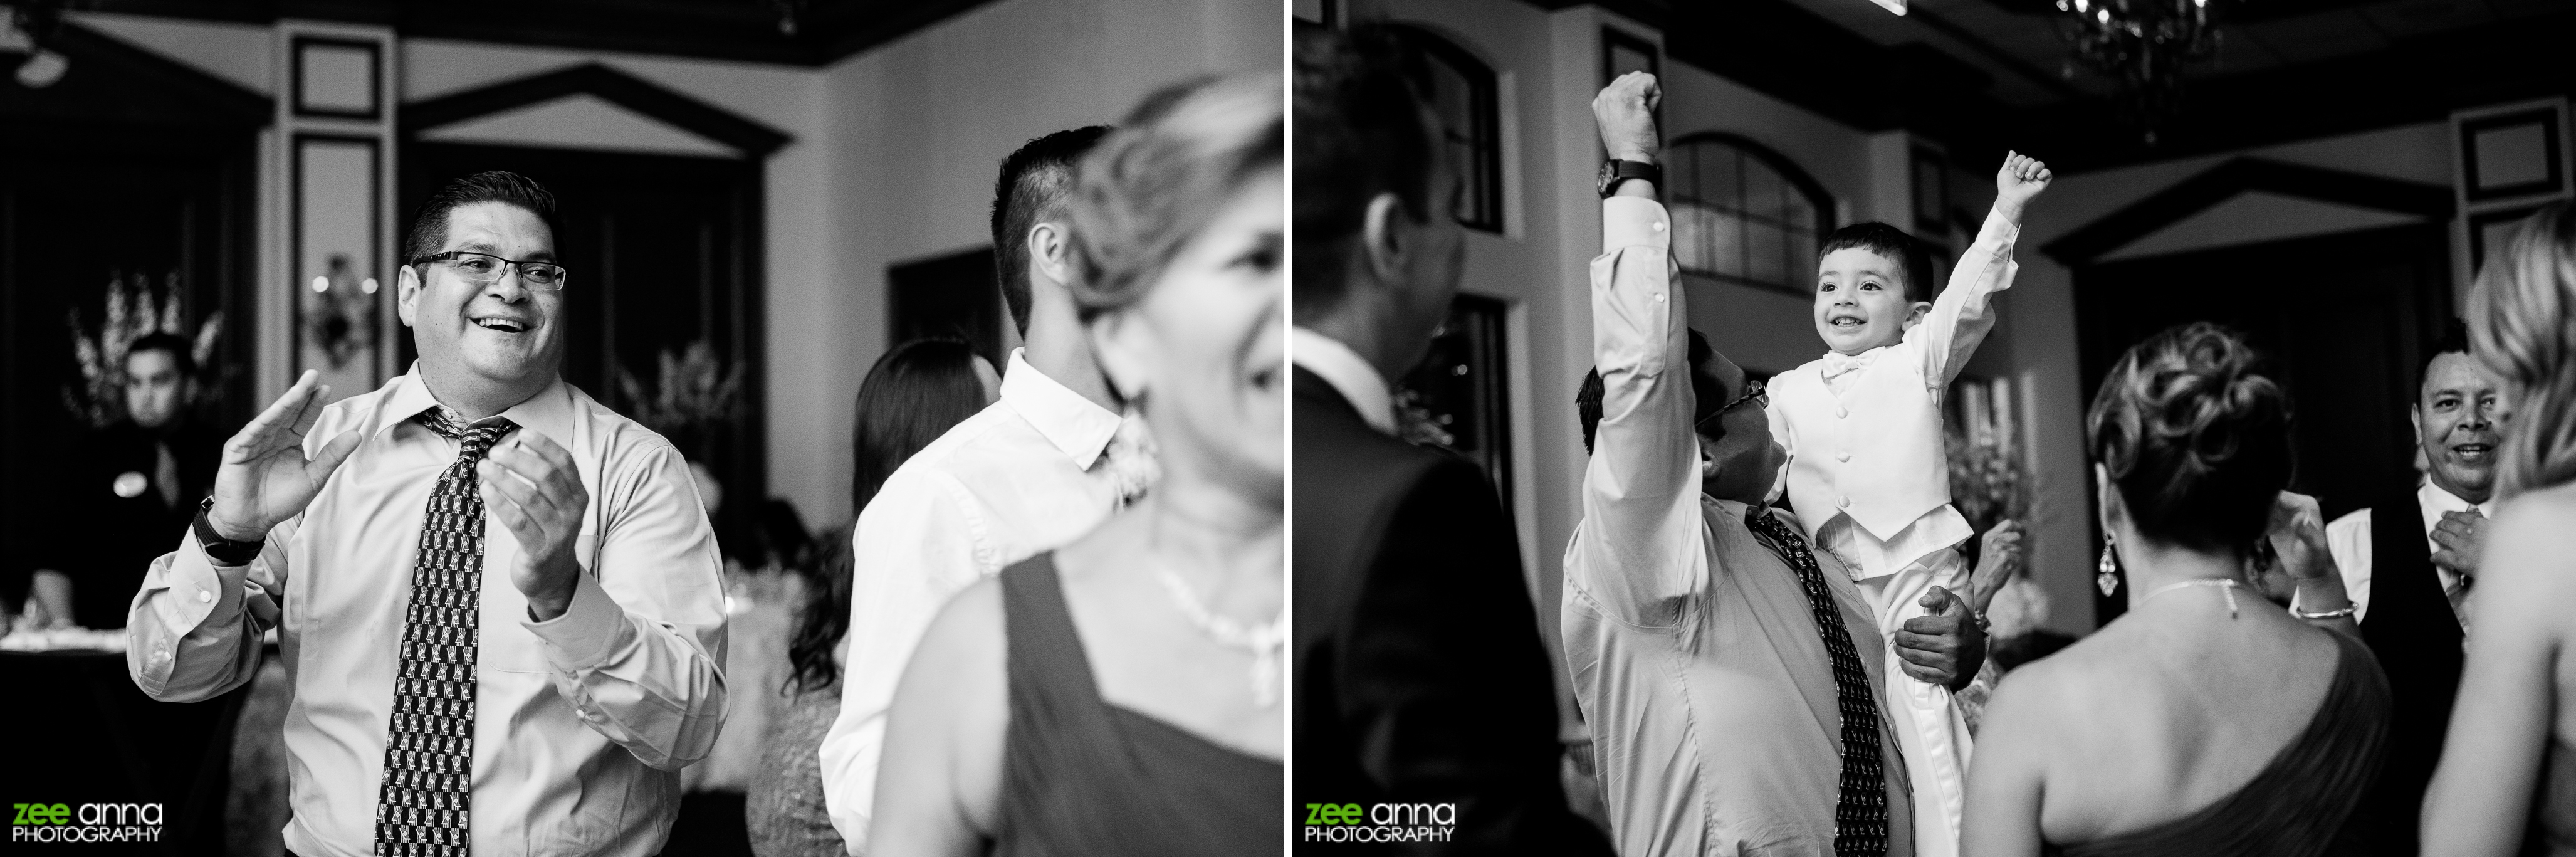 Blog-GrandezzaWedding-Rob+Laurie-54